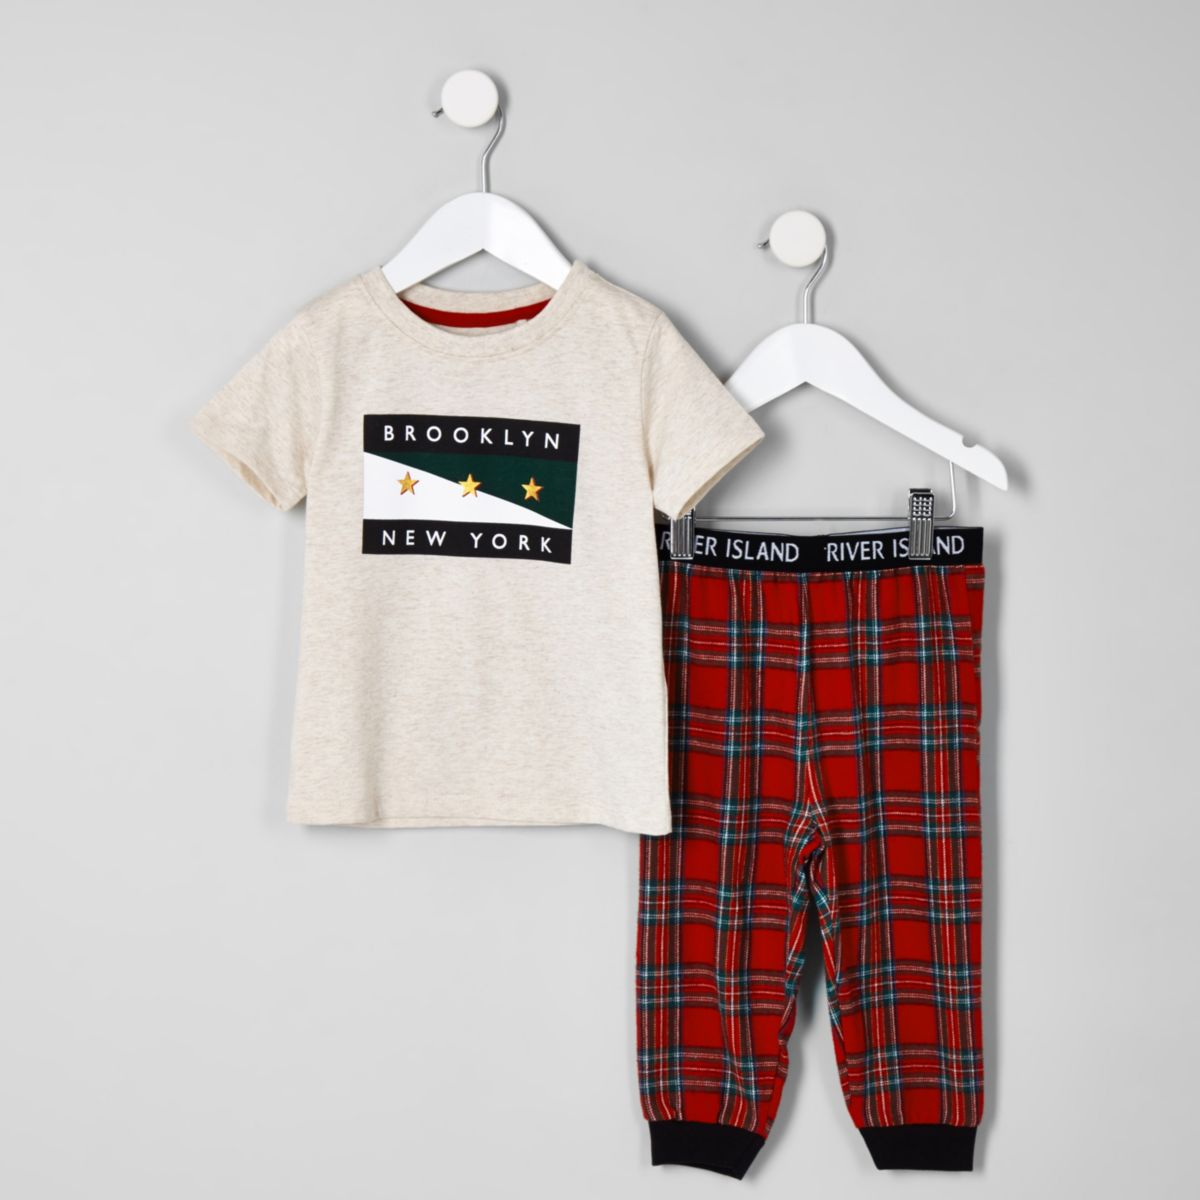 Mini boys cream 'Brooklyn' T-shirt pajama set